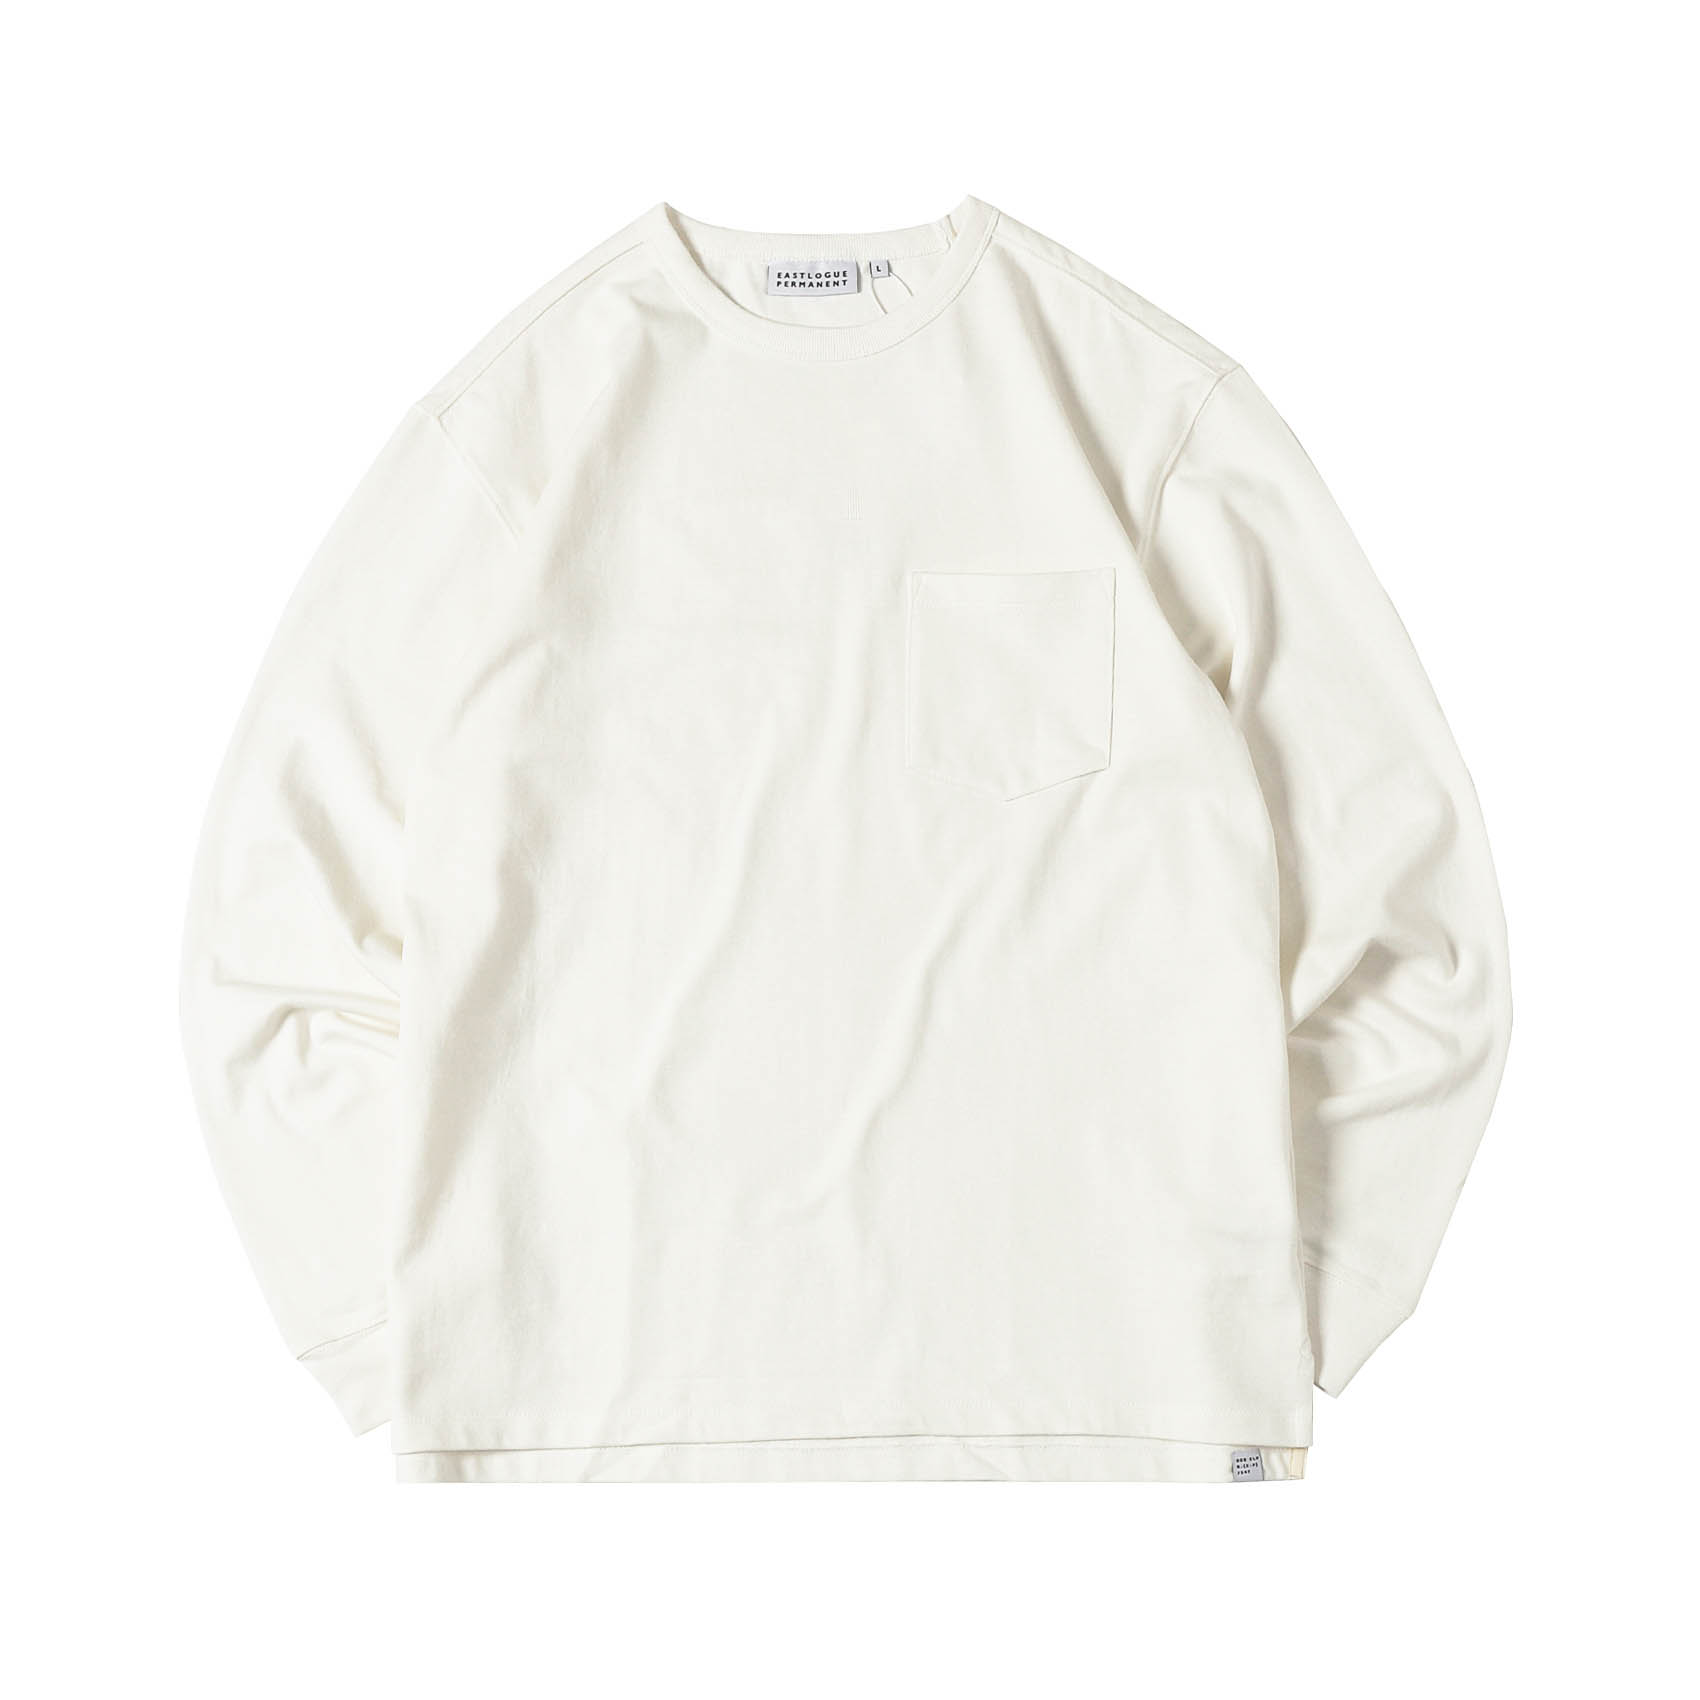 ONE POCKET L/S T-SHIRT - WHITE